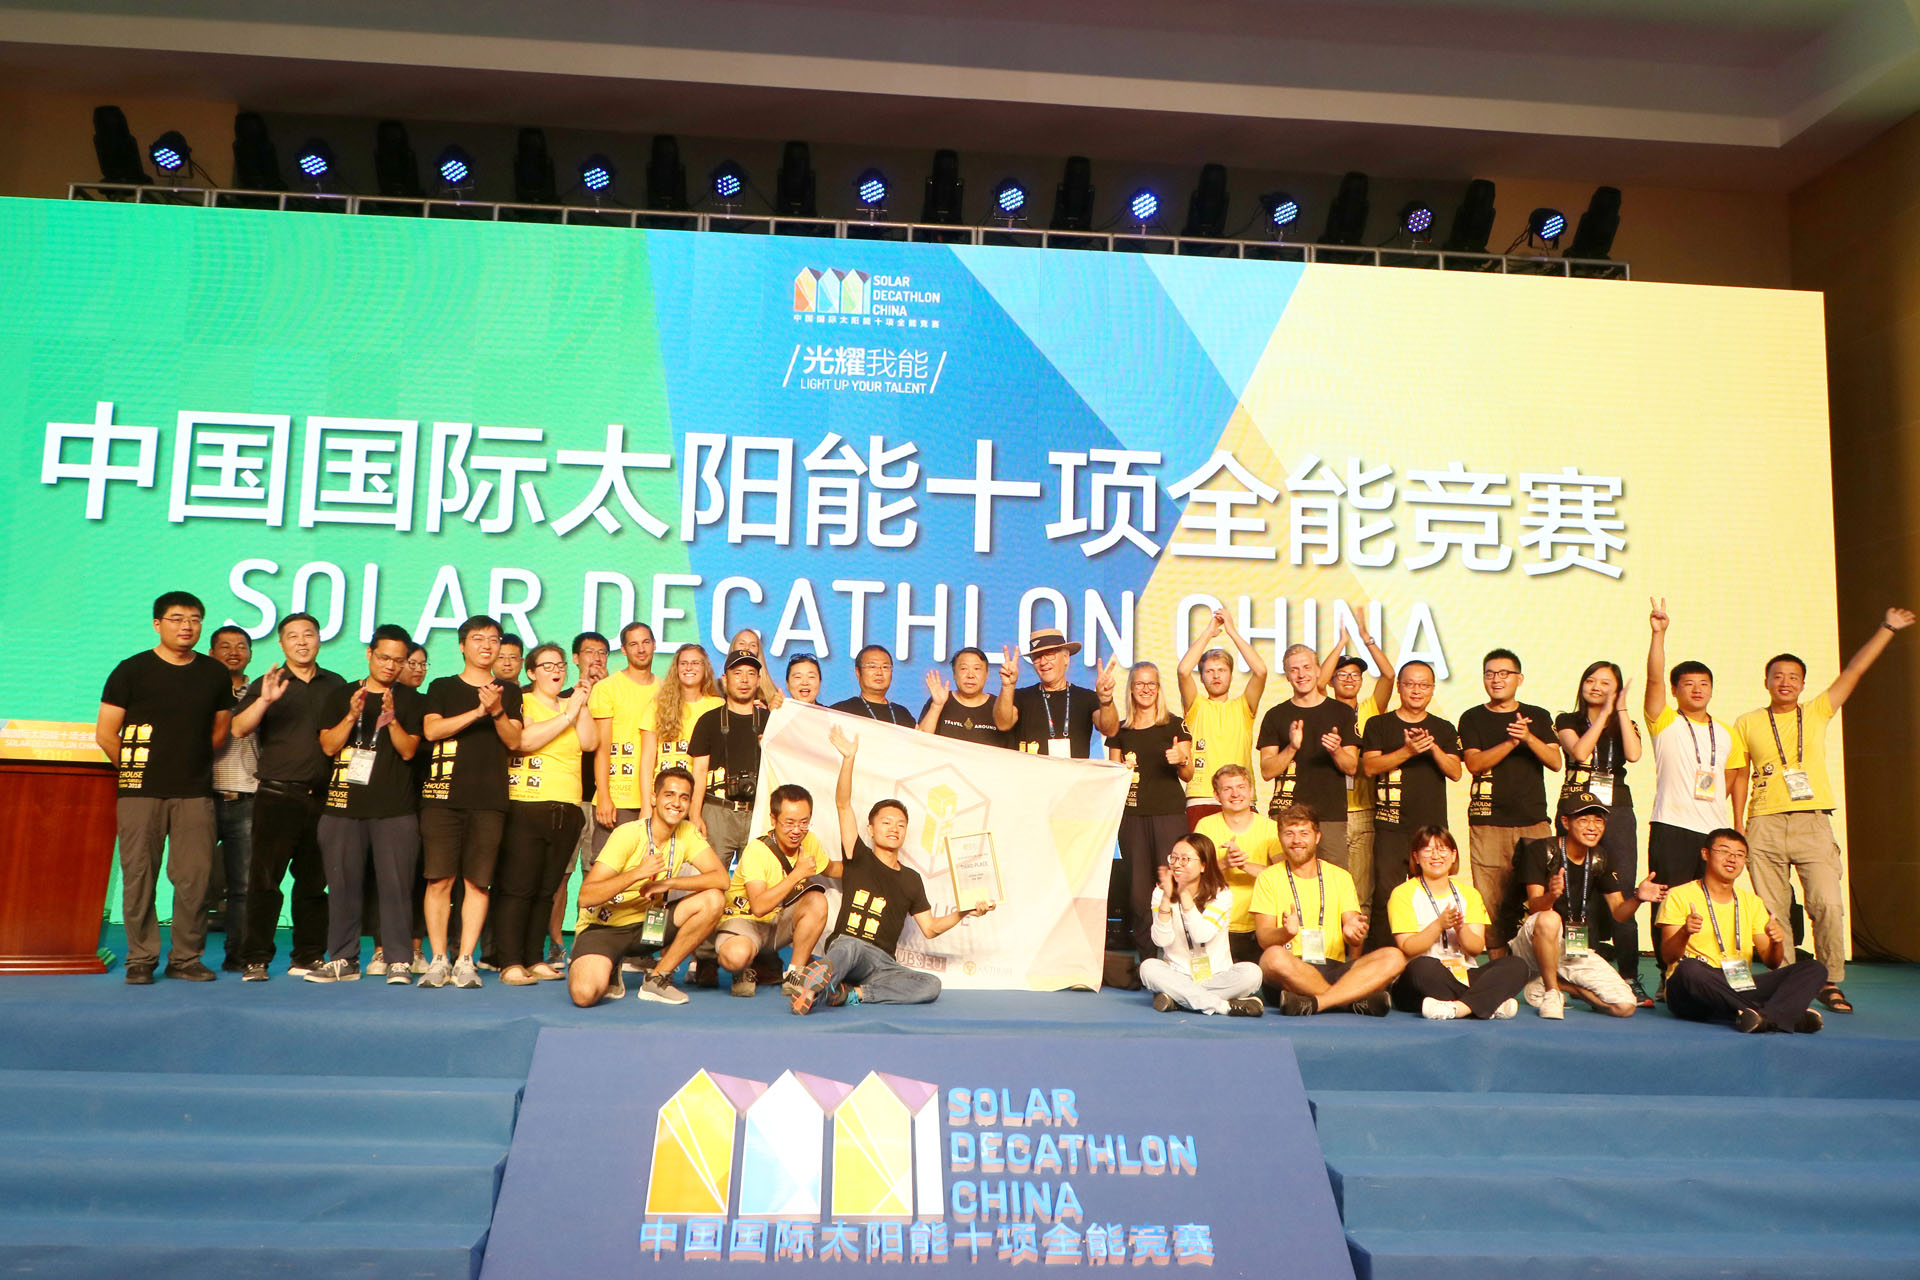 IGS | Solar Decathlon China